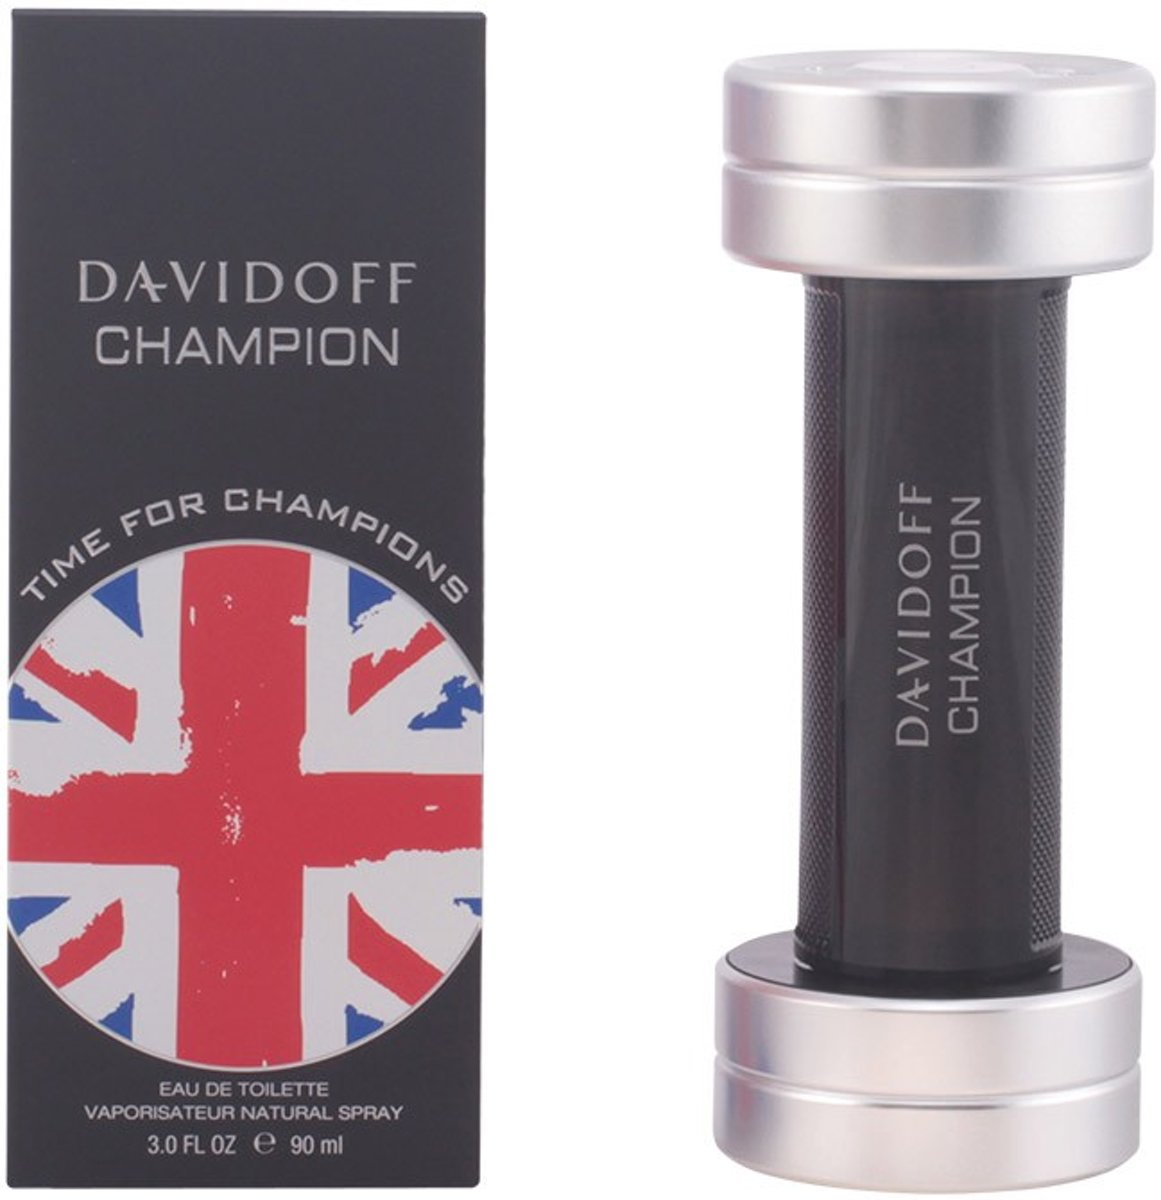 Davidoff Champion Limited Edition - 90 ml - Eau de toilette